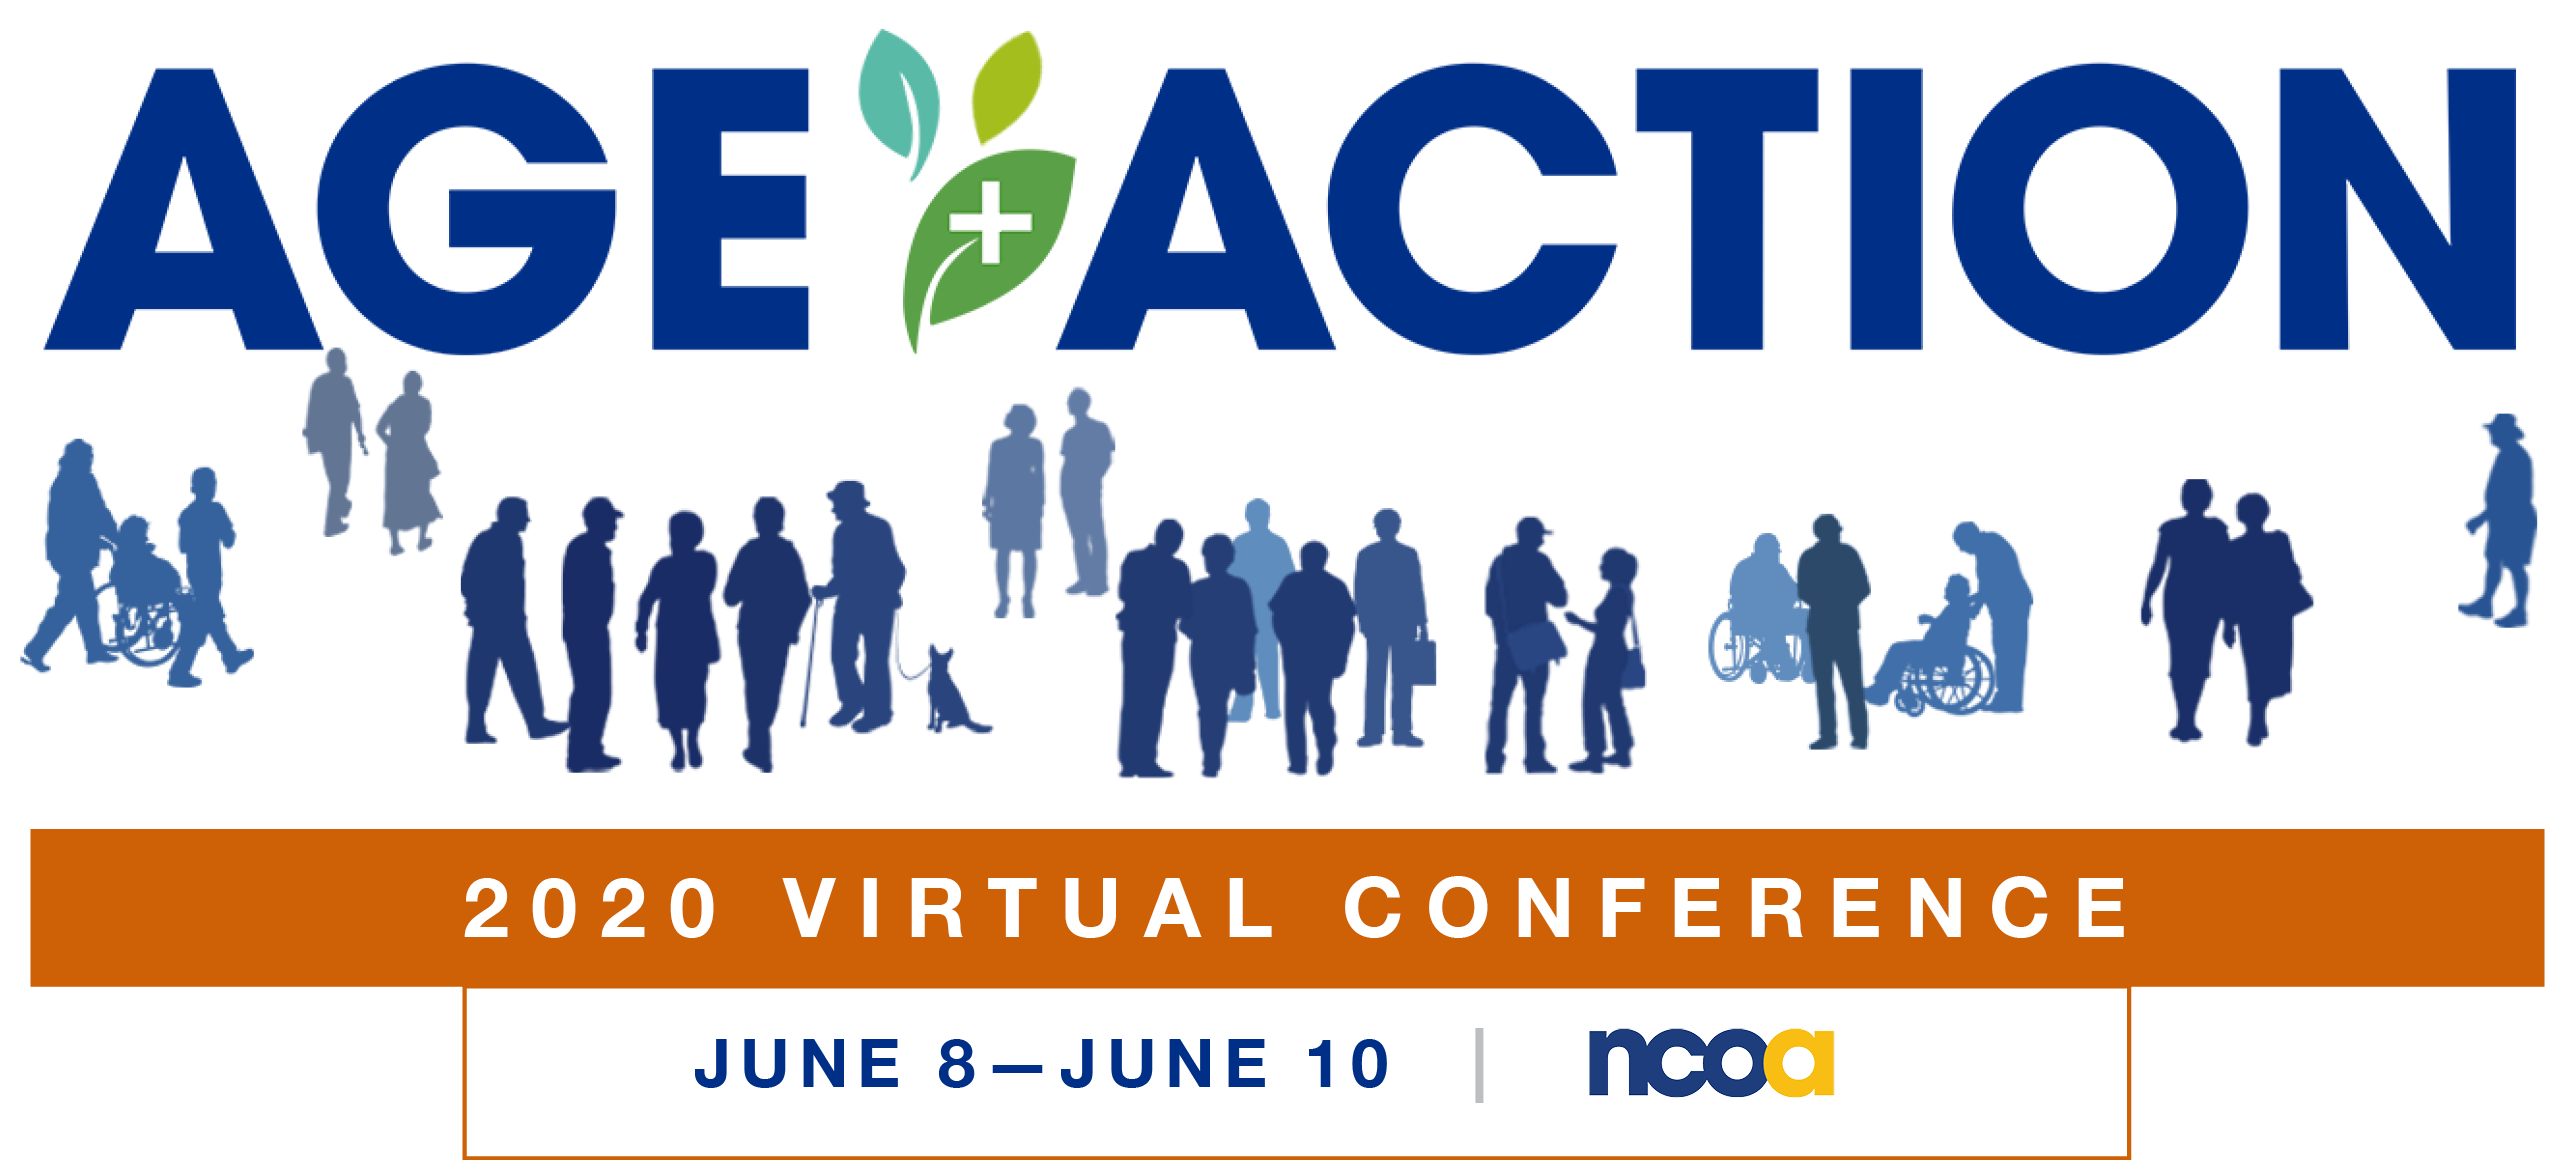 2020-AA-Virtual Conference_DG01_banner-V1.png